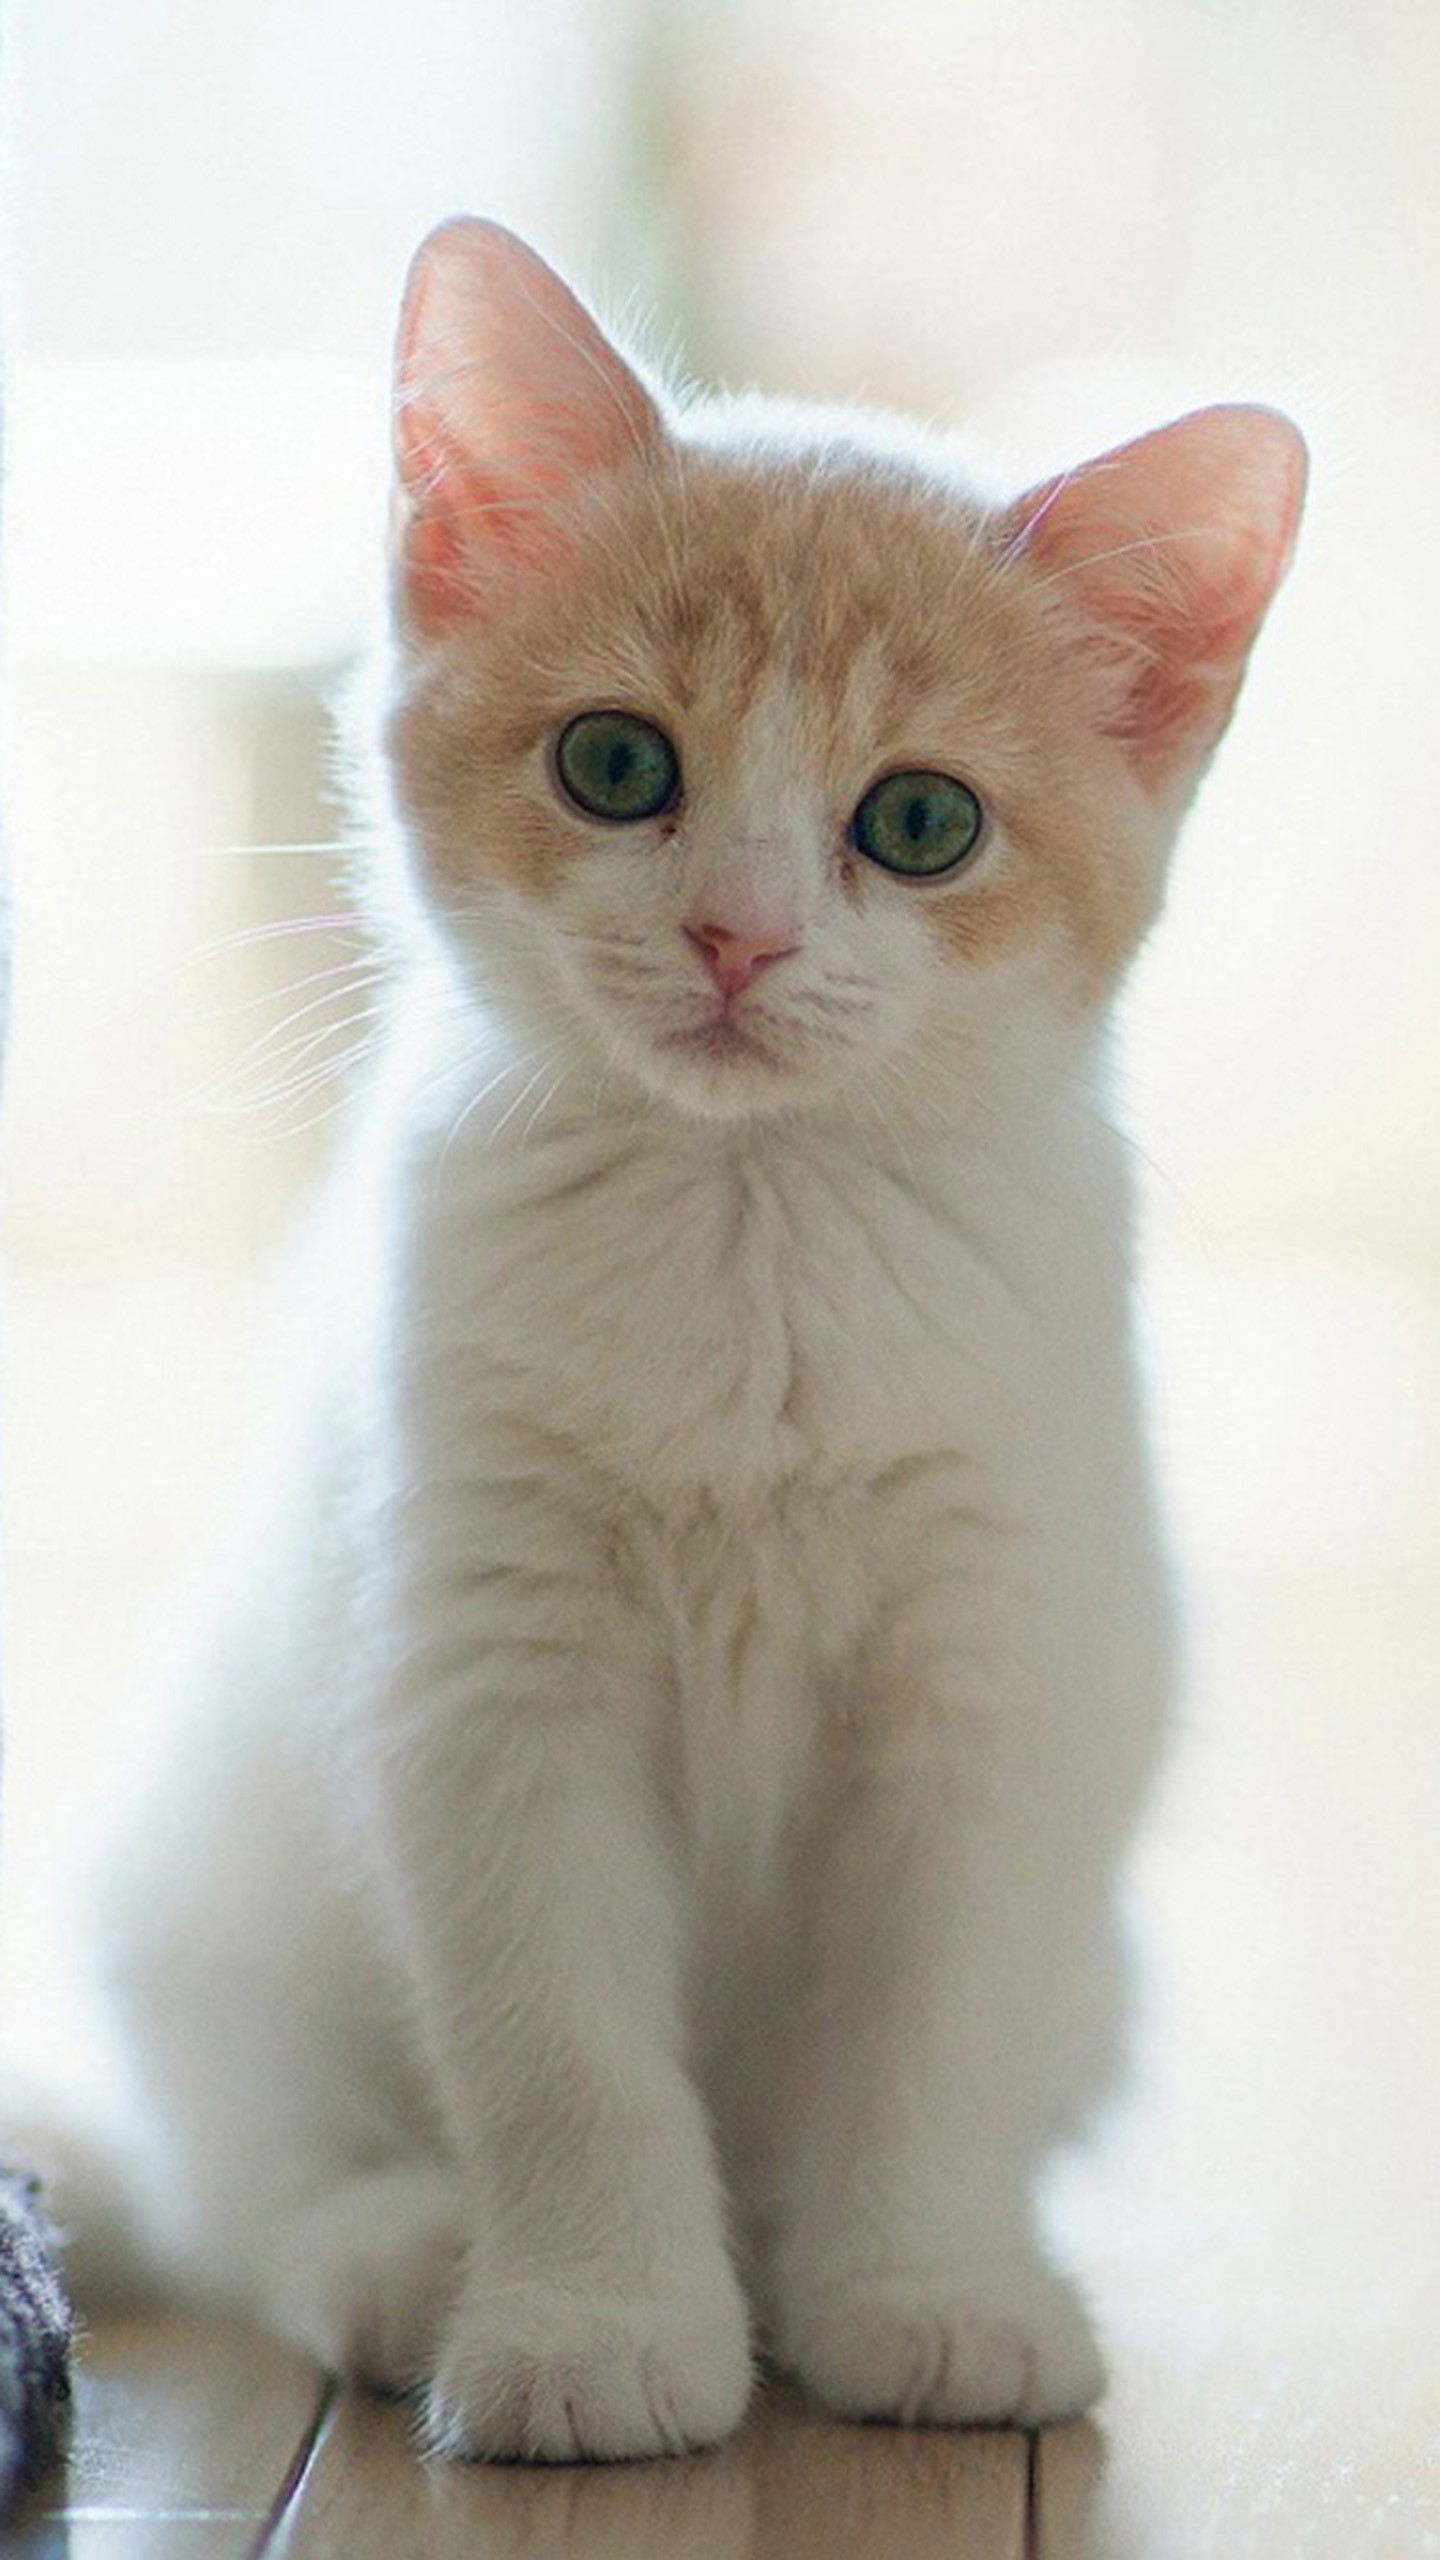 Cute cat 04 Galaxy Note 4 Wallpapers